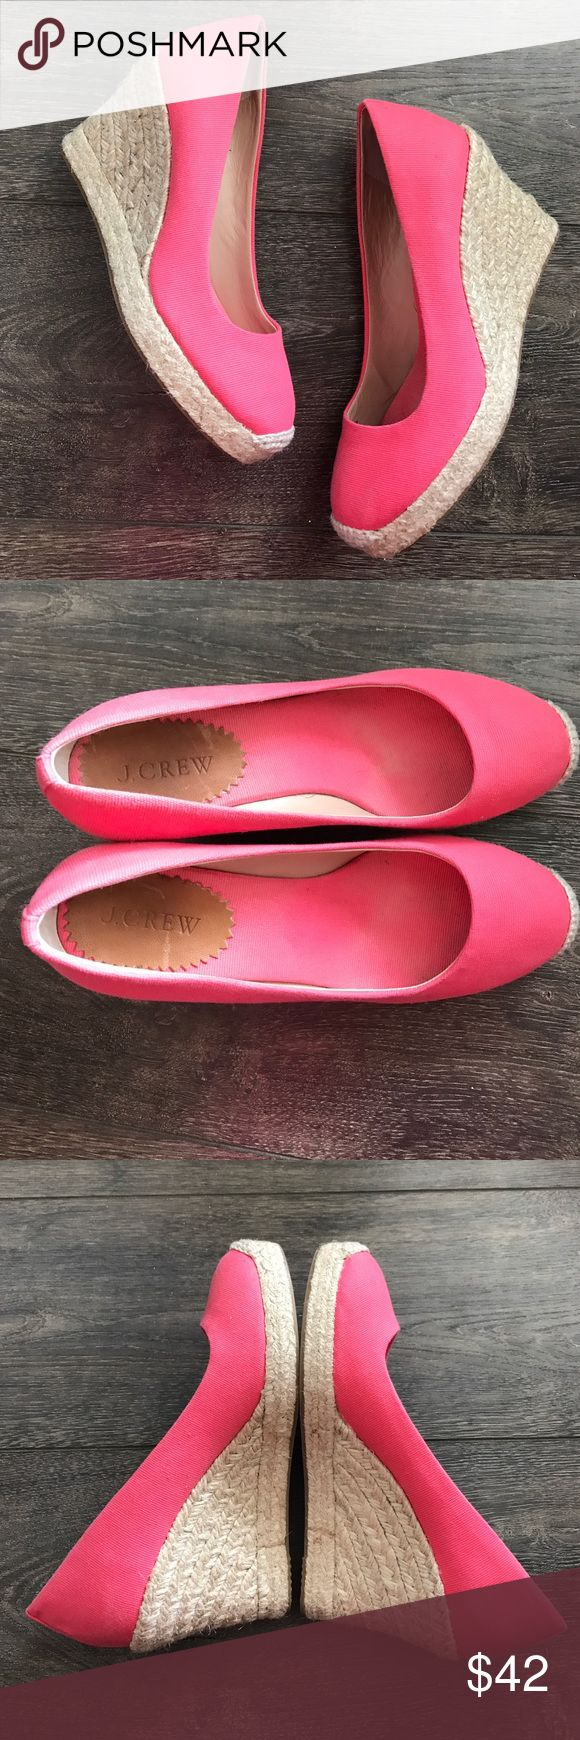 "J. Crew pink espadrille wedges EUC, very light wear, platform is .75"" and heel is 3"" tall, they are a springy pink:melon colored canvas J. Crew Shoes"